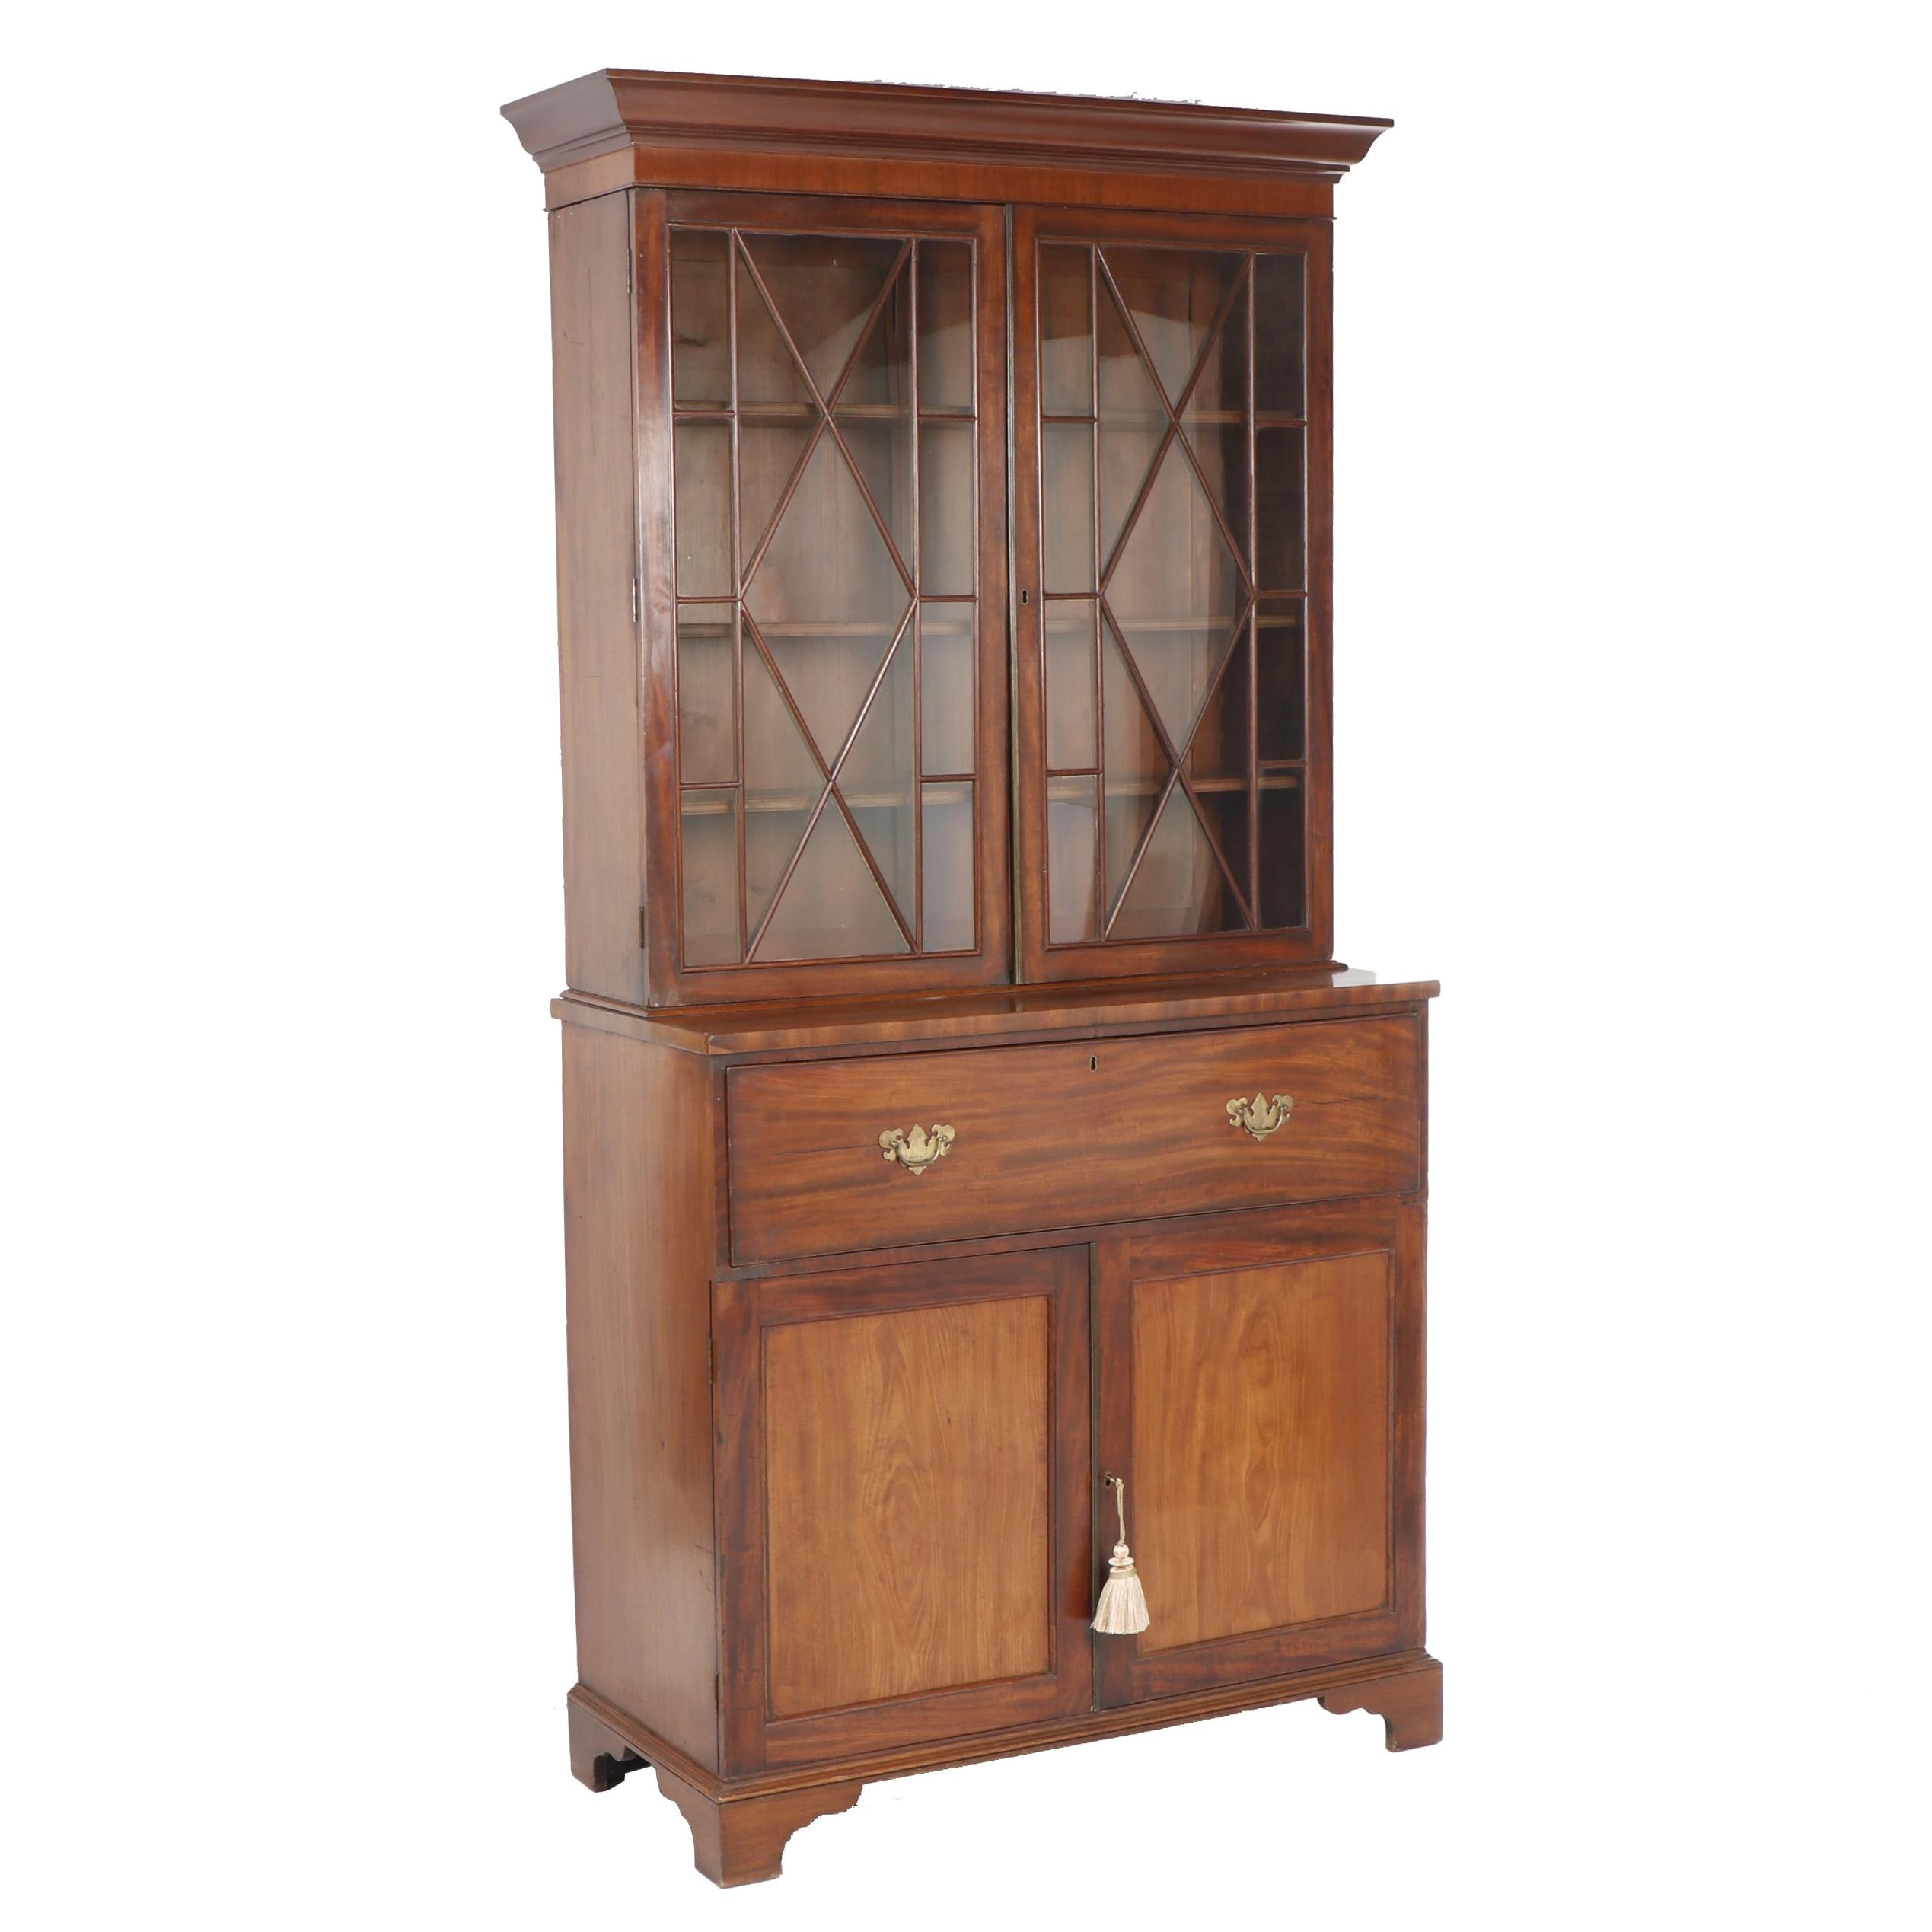 George III Style Cherry Drop Front Secretary with Bookcase, circa 1900